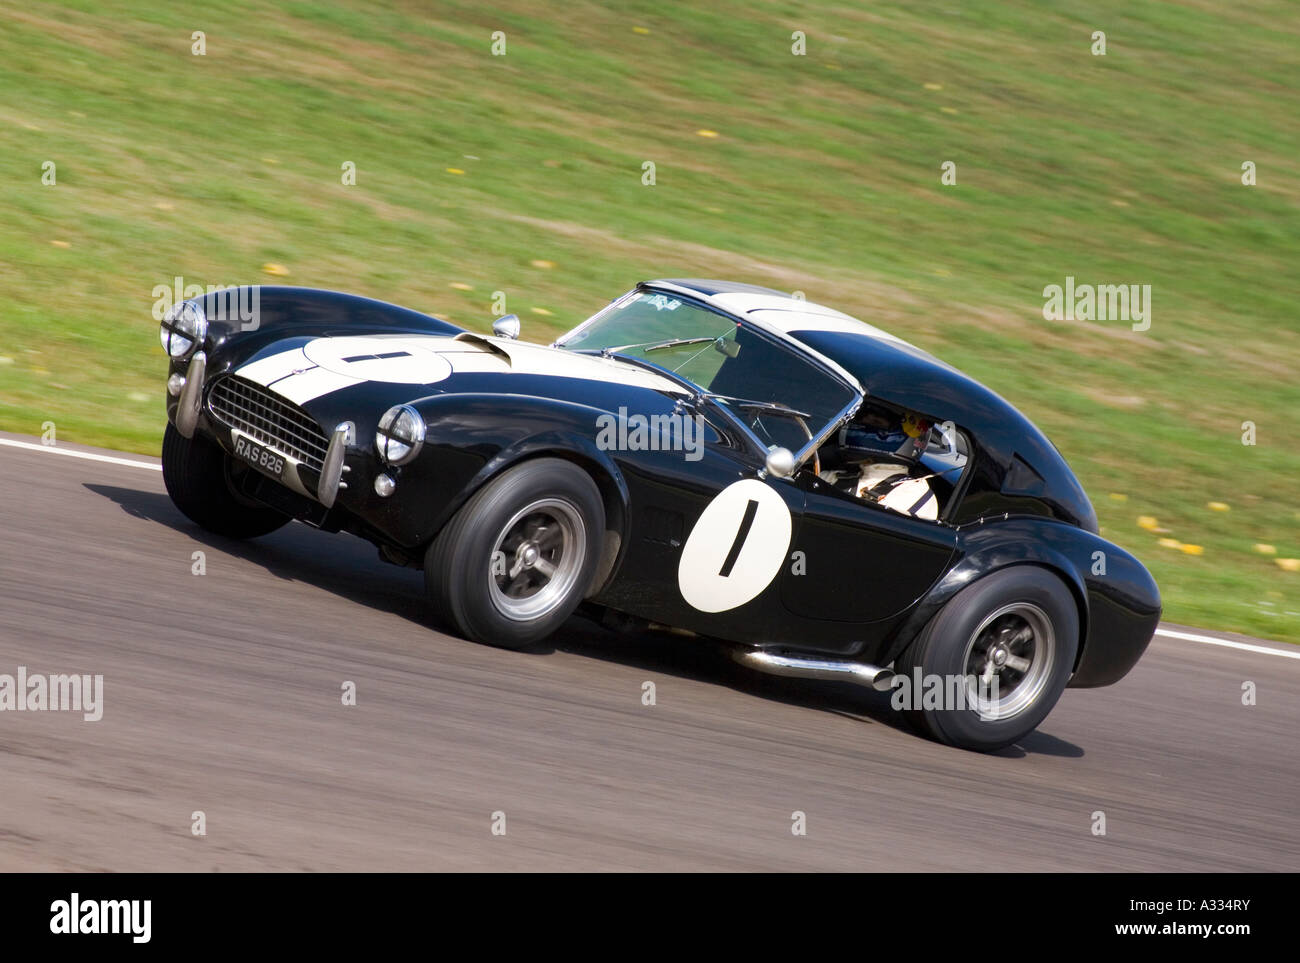 1964 AC Cobra during the Royal Automobile Club TT Celebration race at Goodwood, Sussex. - Stock Image